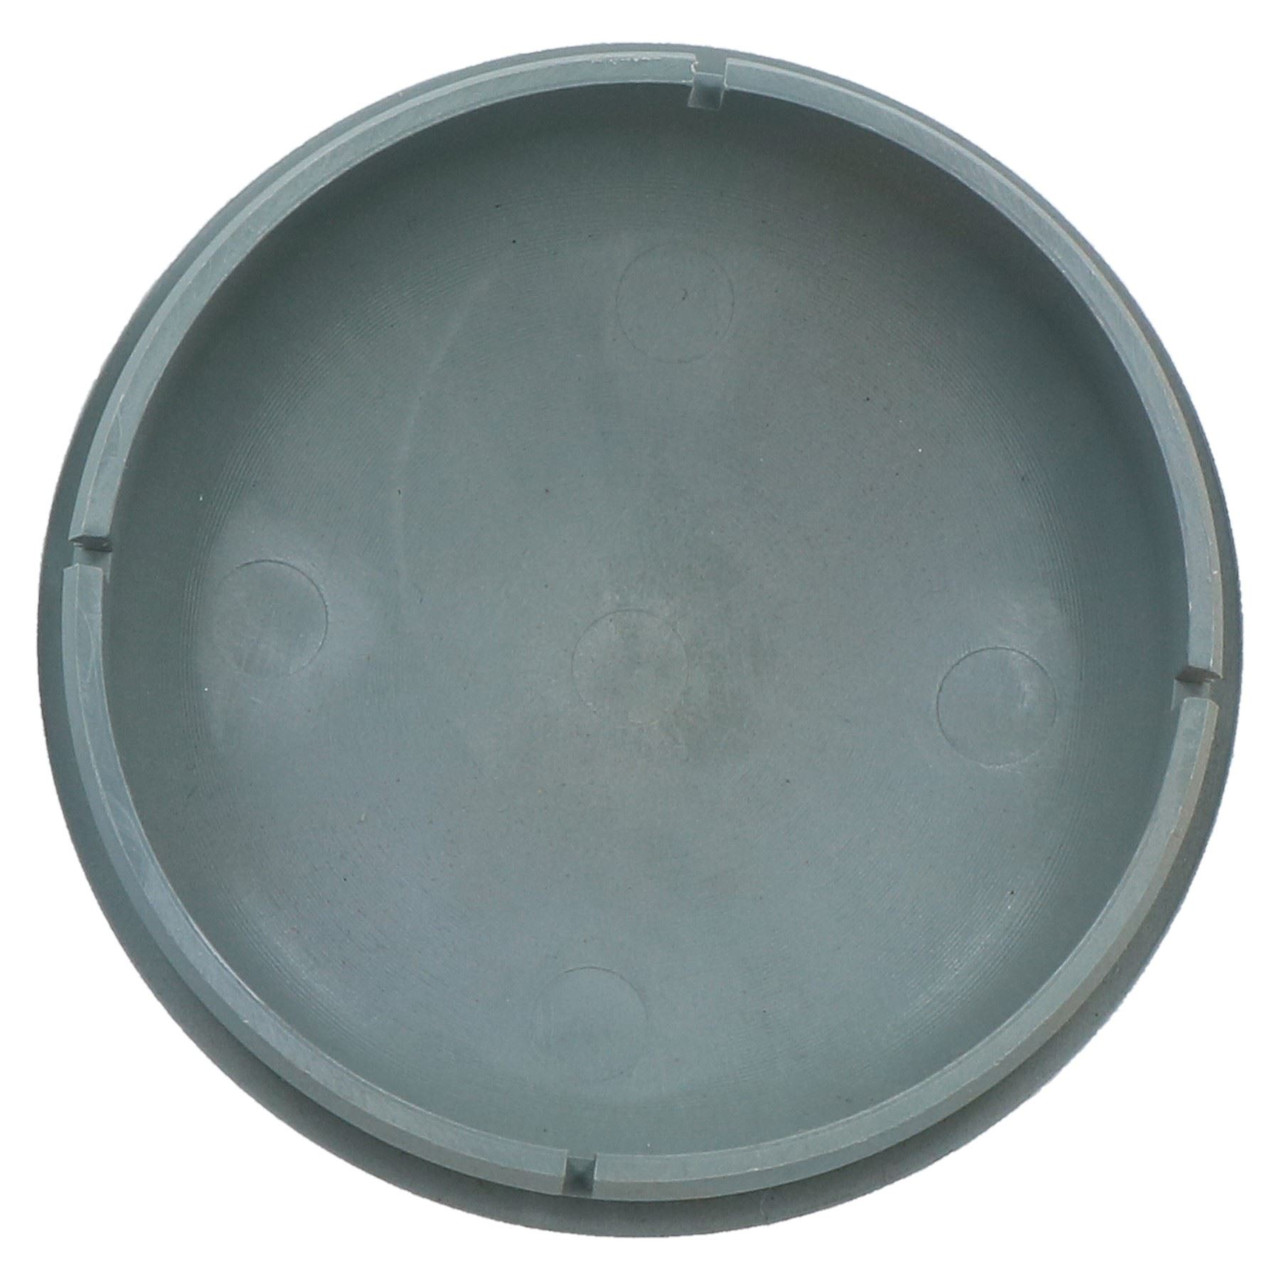 Replacement 55.5mm Dust Hub Cap Grease Cover for Alko Trailer Drums